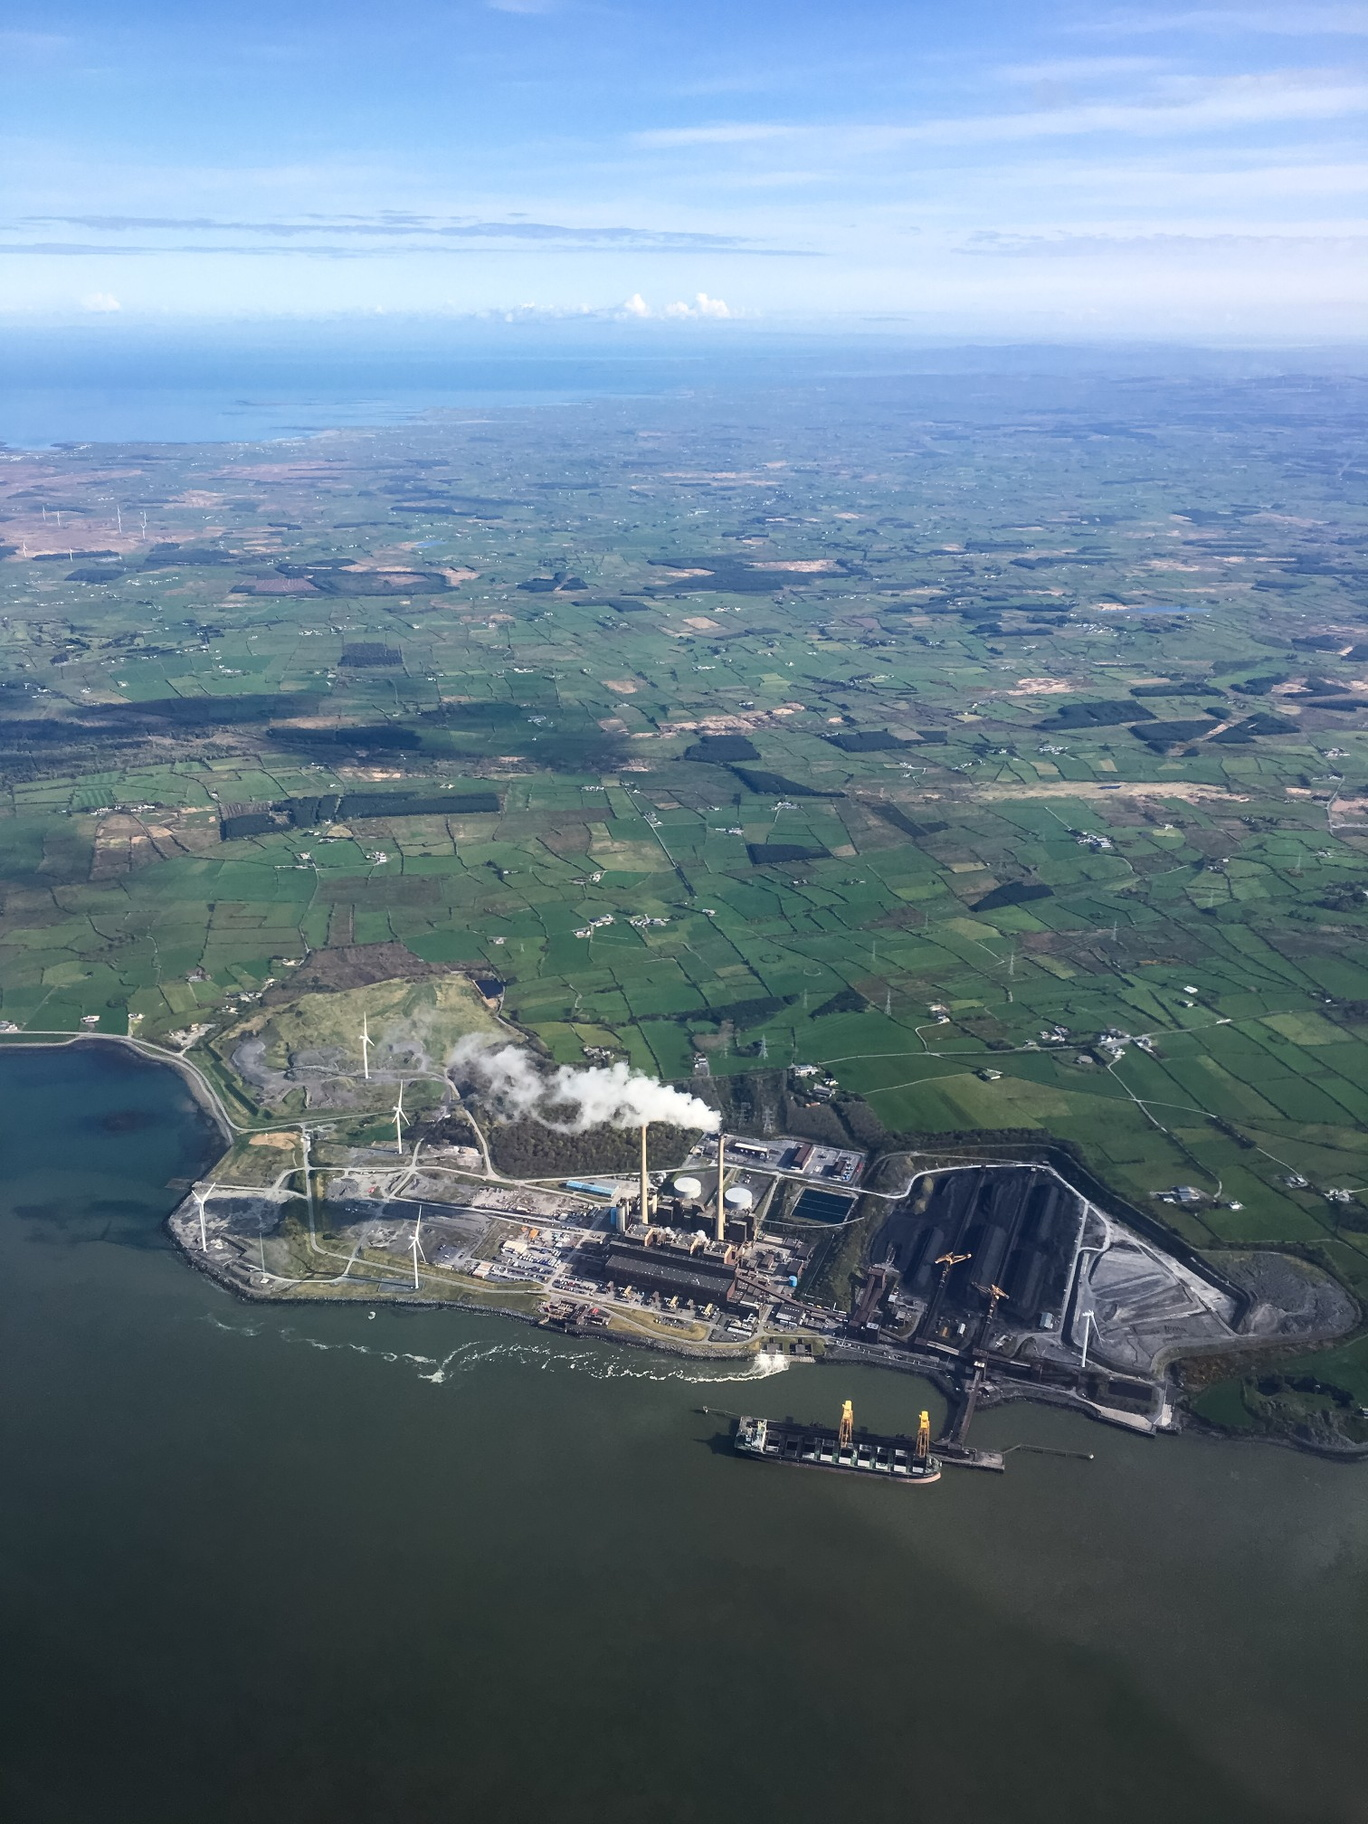 Ireland-0002-Powerplant with a HUGE amount of coal piled up in the lower right. Notice the new windmills installed right next to it.